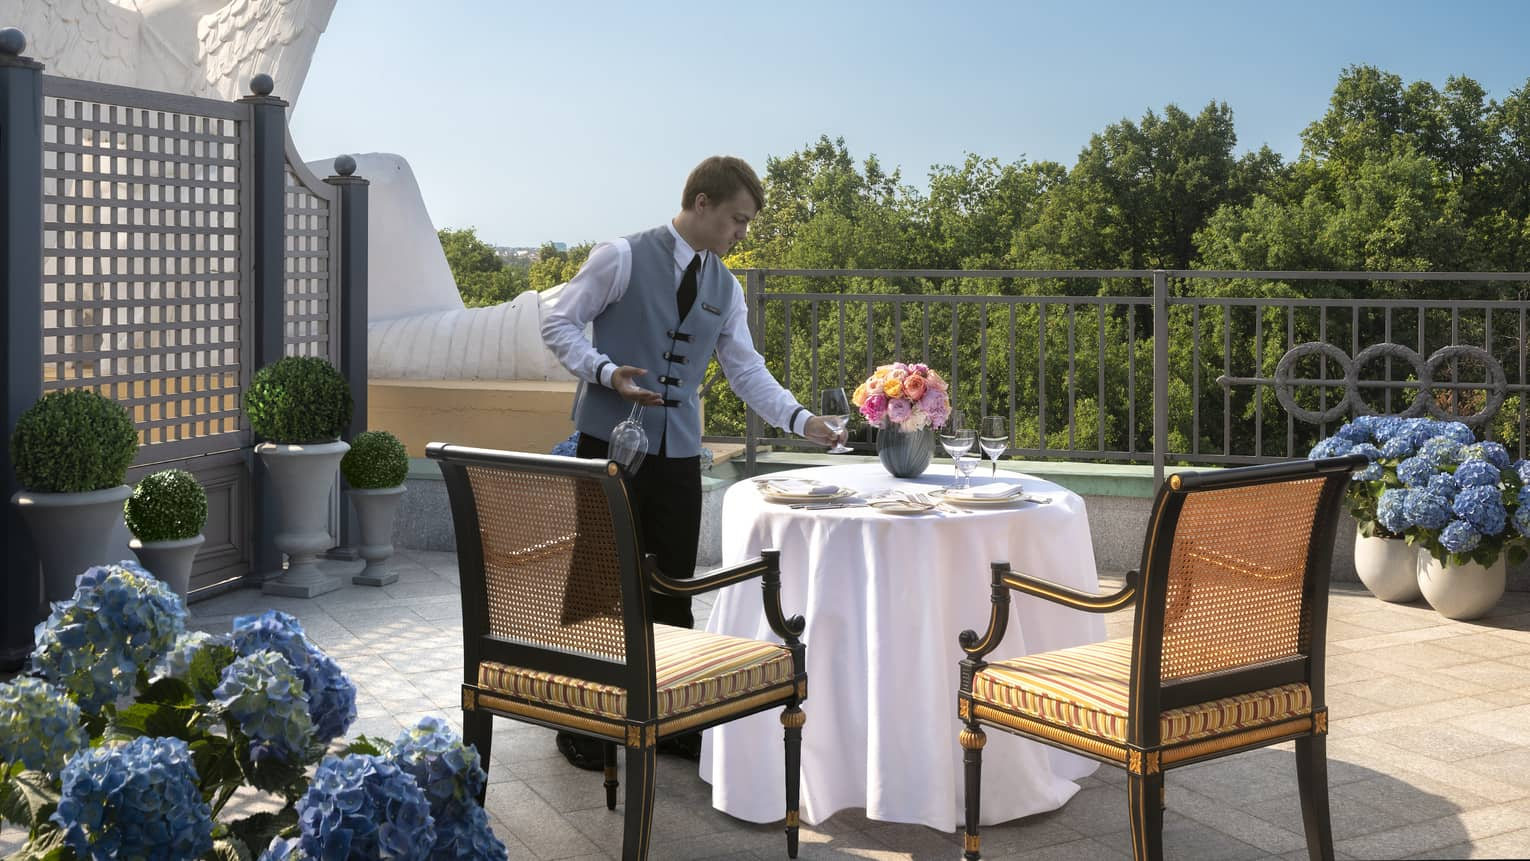 A four seasons staff sets a table for two on the Terrace surrounded by blue hydrangeas